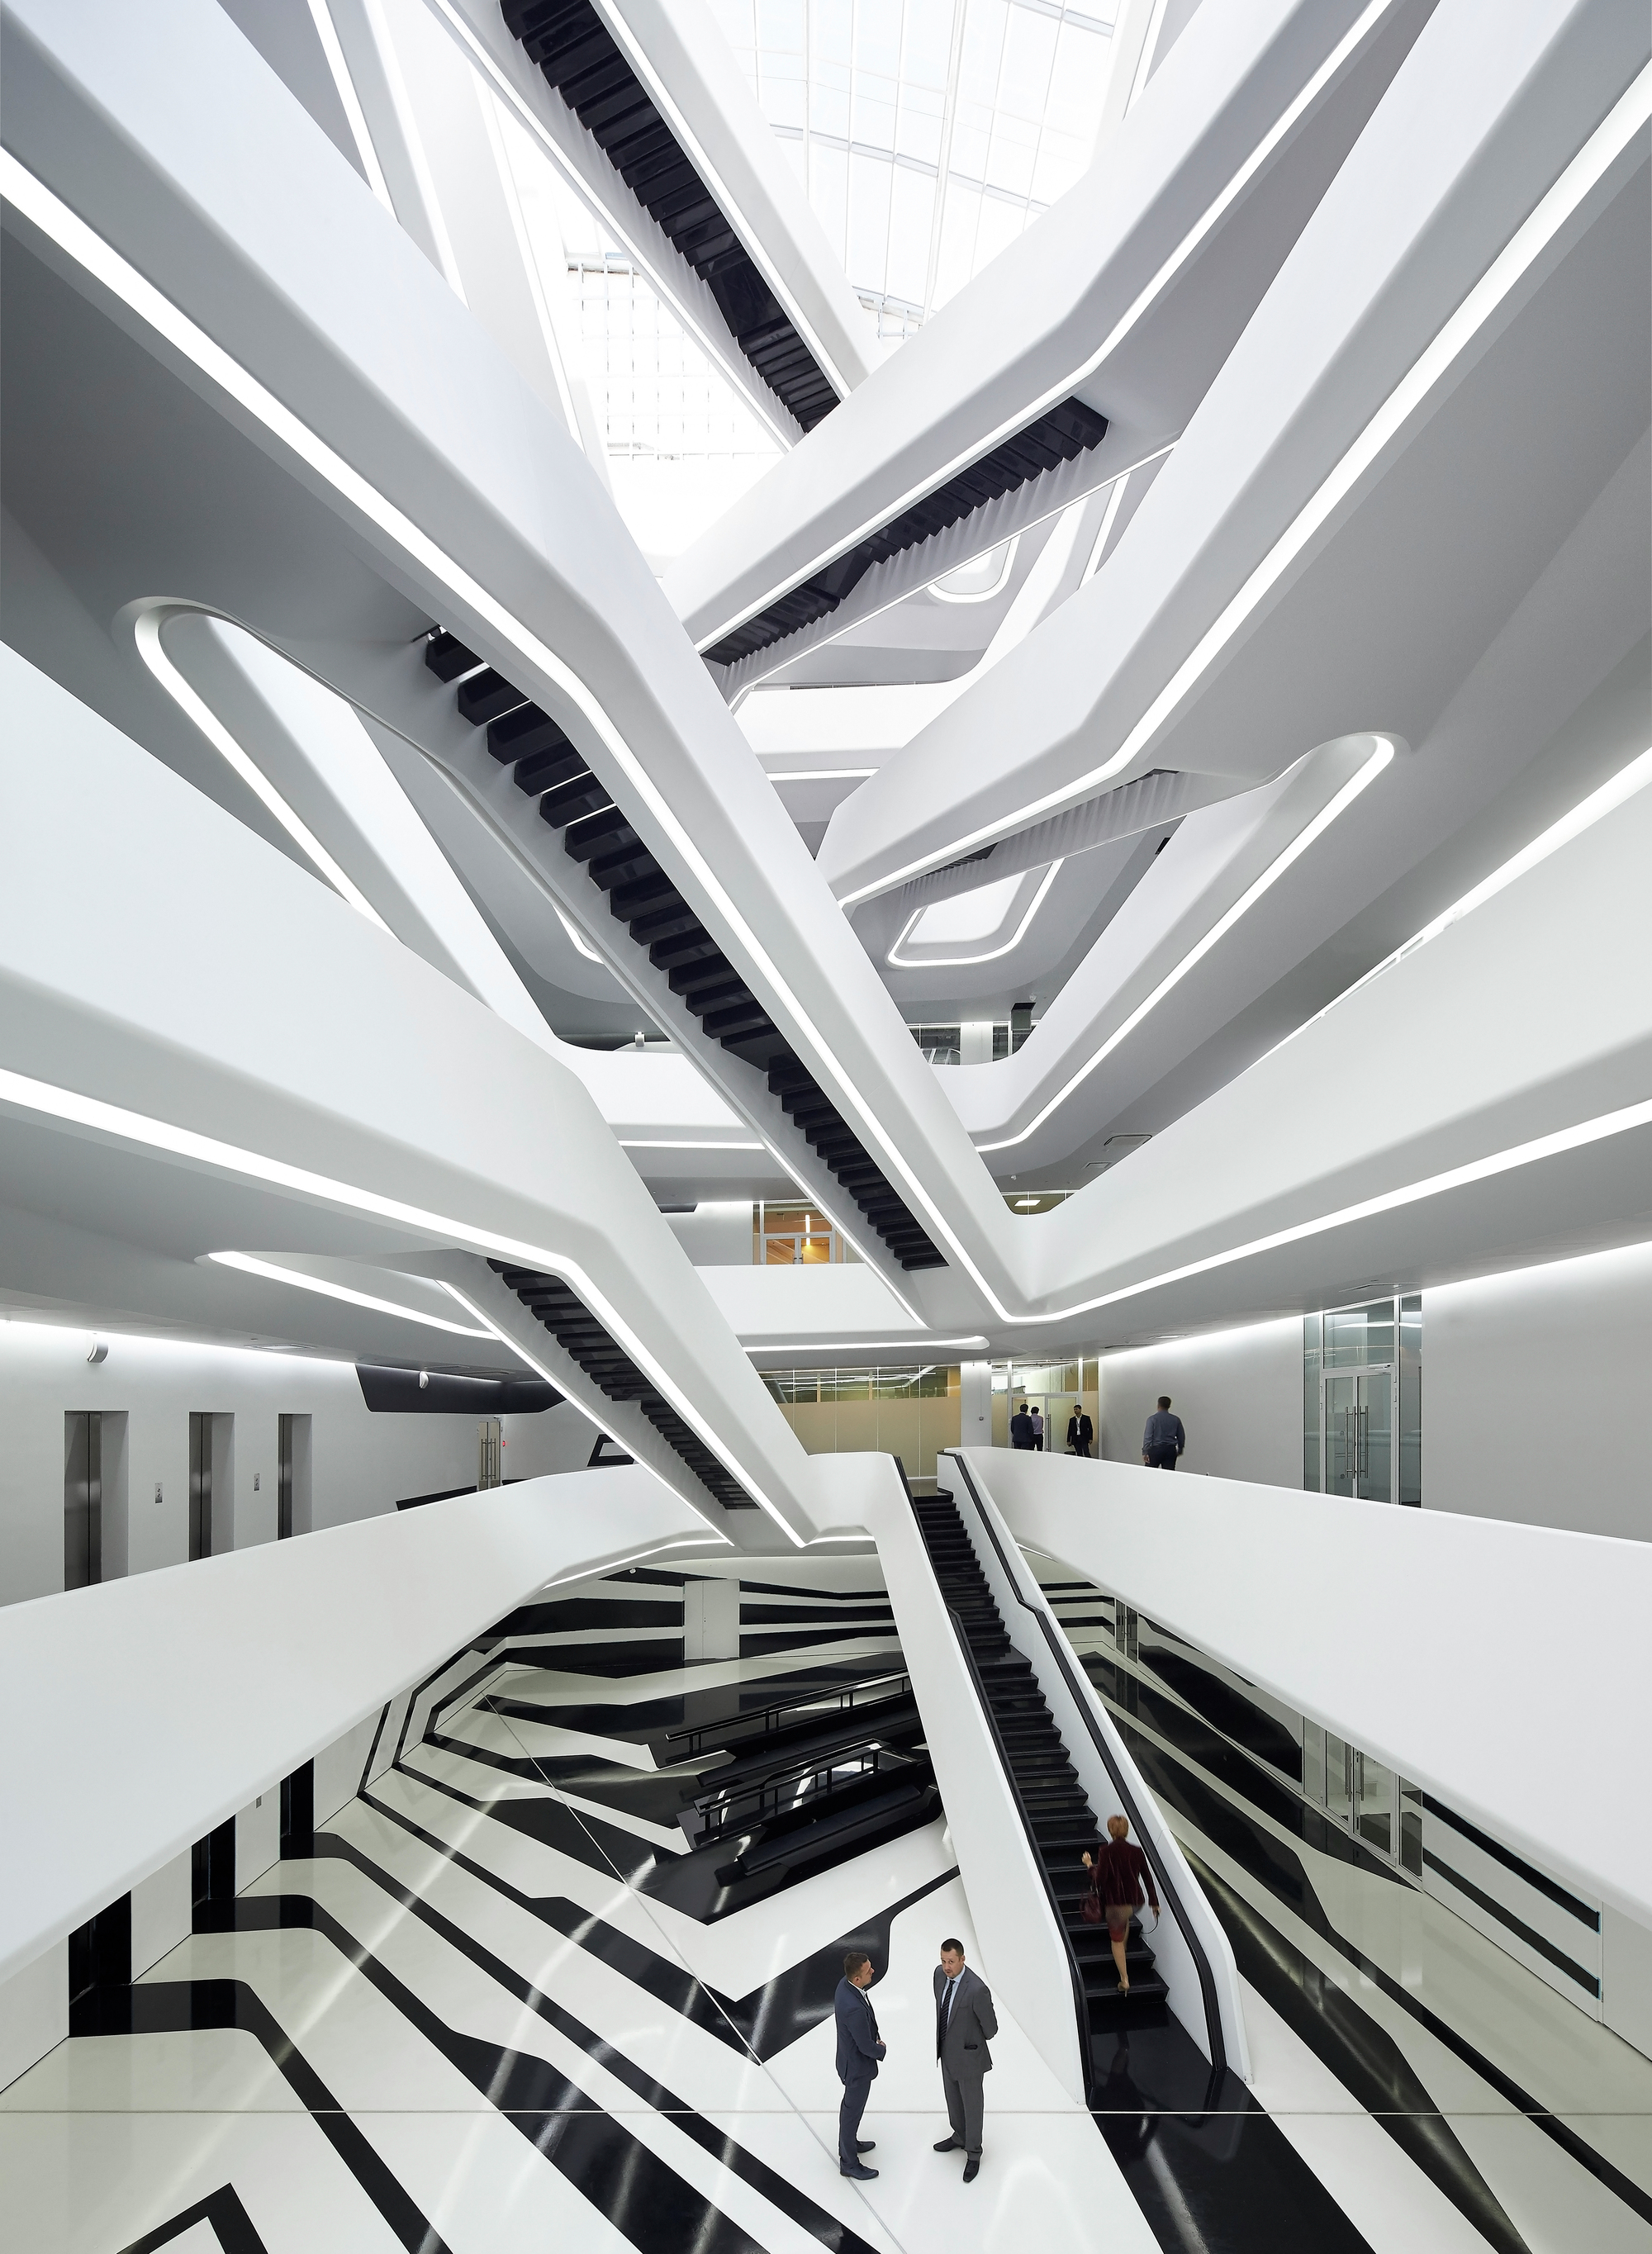 ZHA_Dominion_Office_Space_Moscow_∏Hufton_Crow_010.jpg